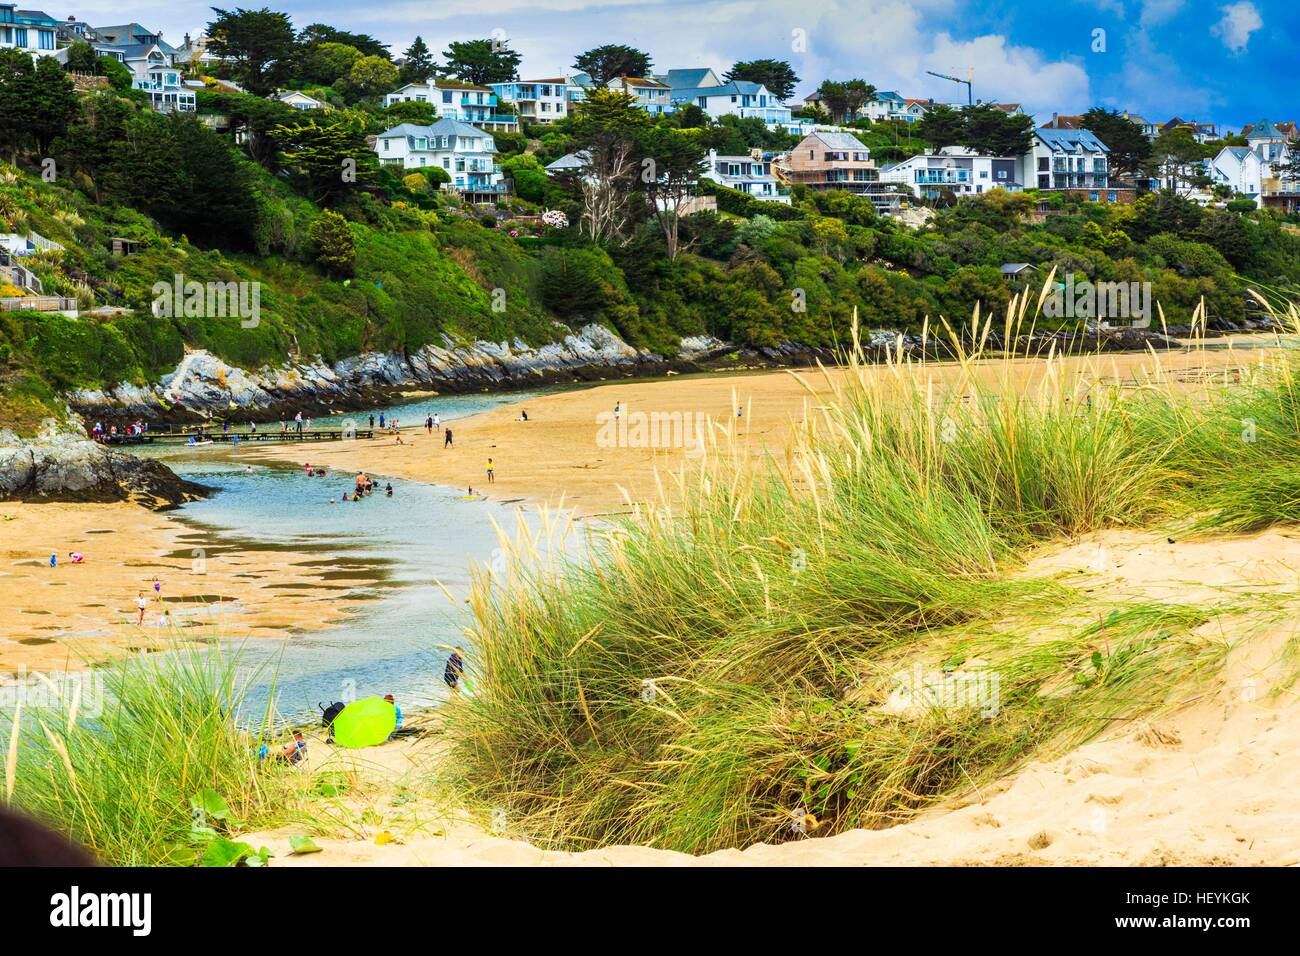 A views across the sand dunes at Crantock Beach and the Gannel River estuary in Newquay, Cornwall, UK Stock Photo